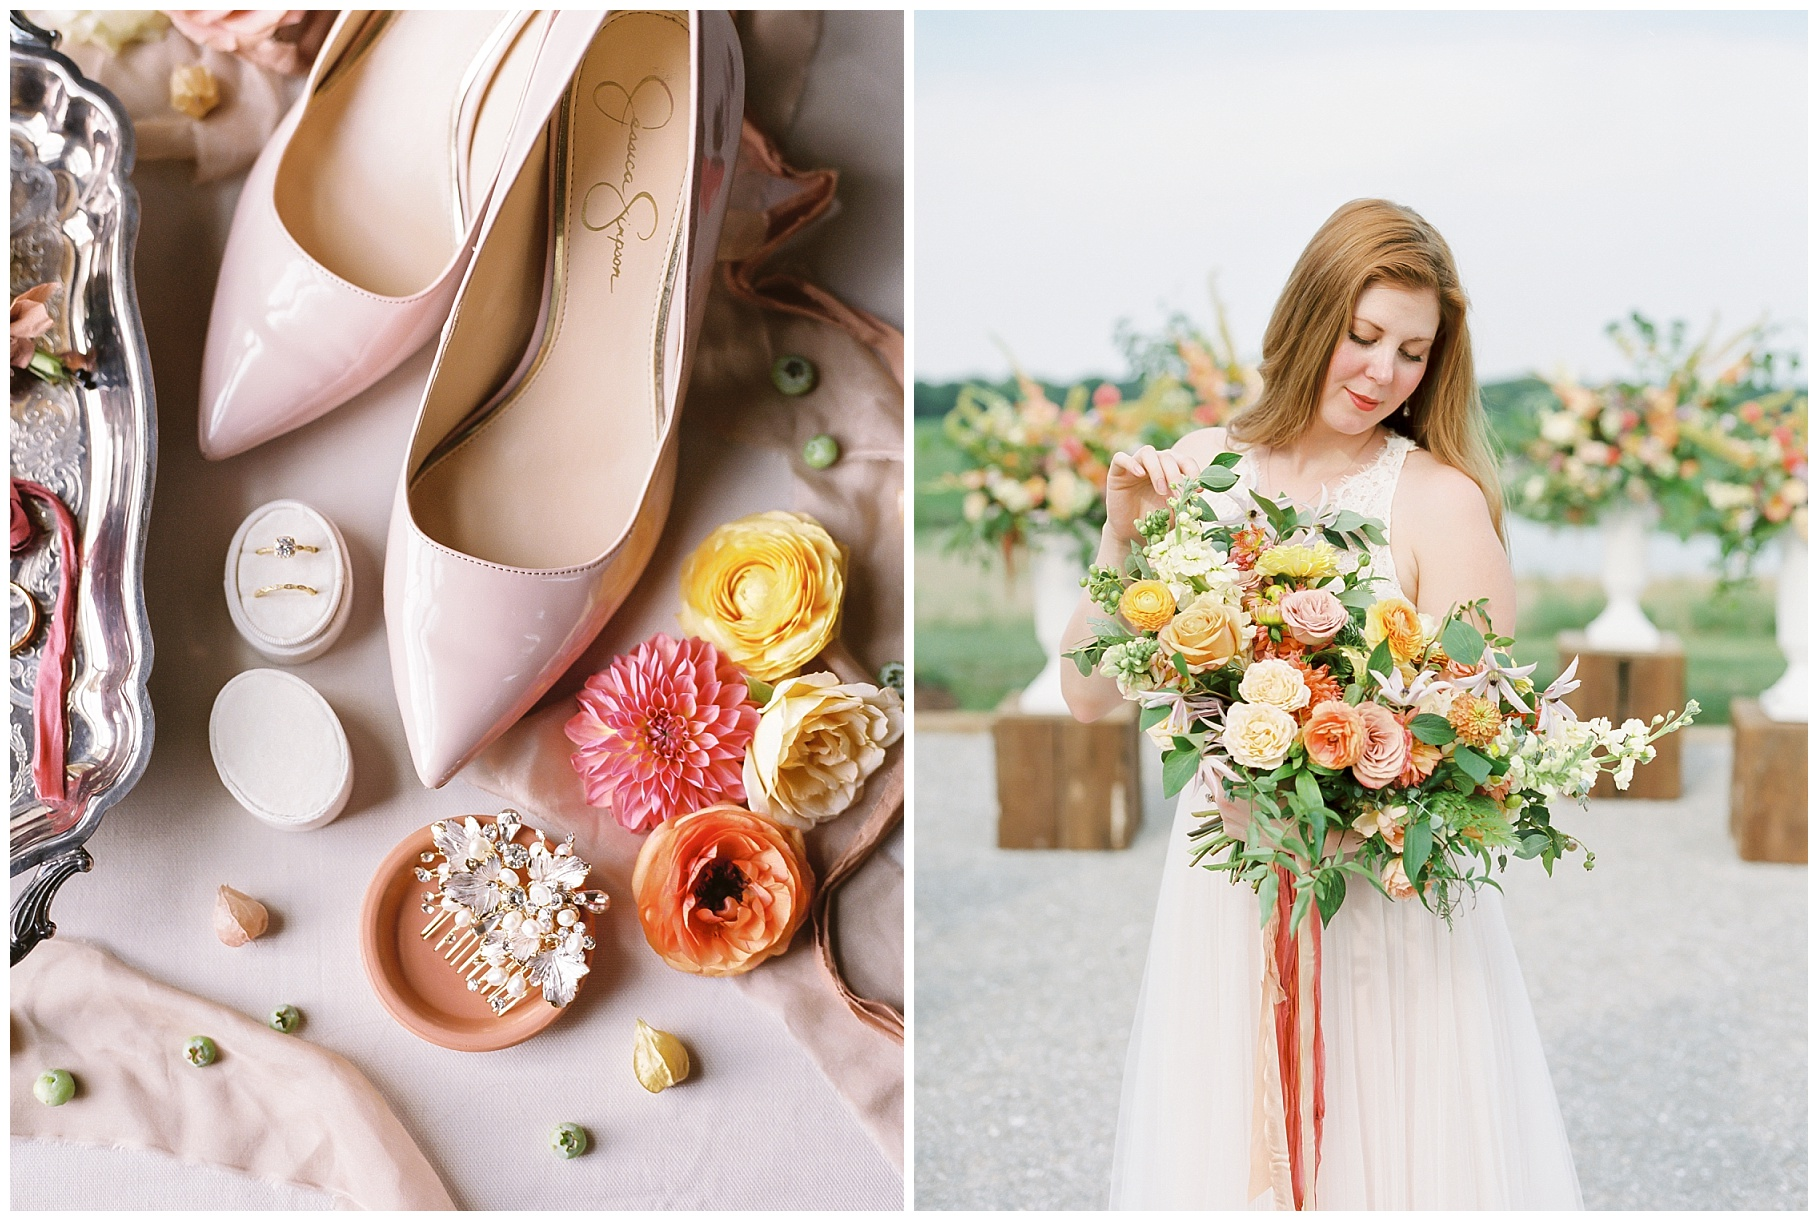 Late Summer Wedding With Pastel Toned Soiree at Blue Bell Farm by Kelsi Kliethermes Photography Best Columbia Missouri Wedding Photographer_0085.jpg